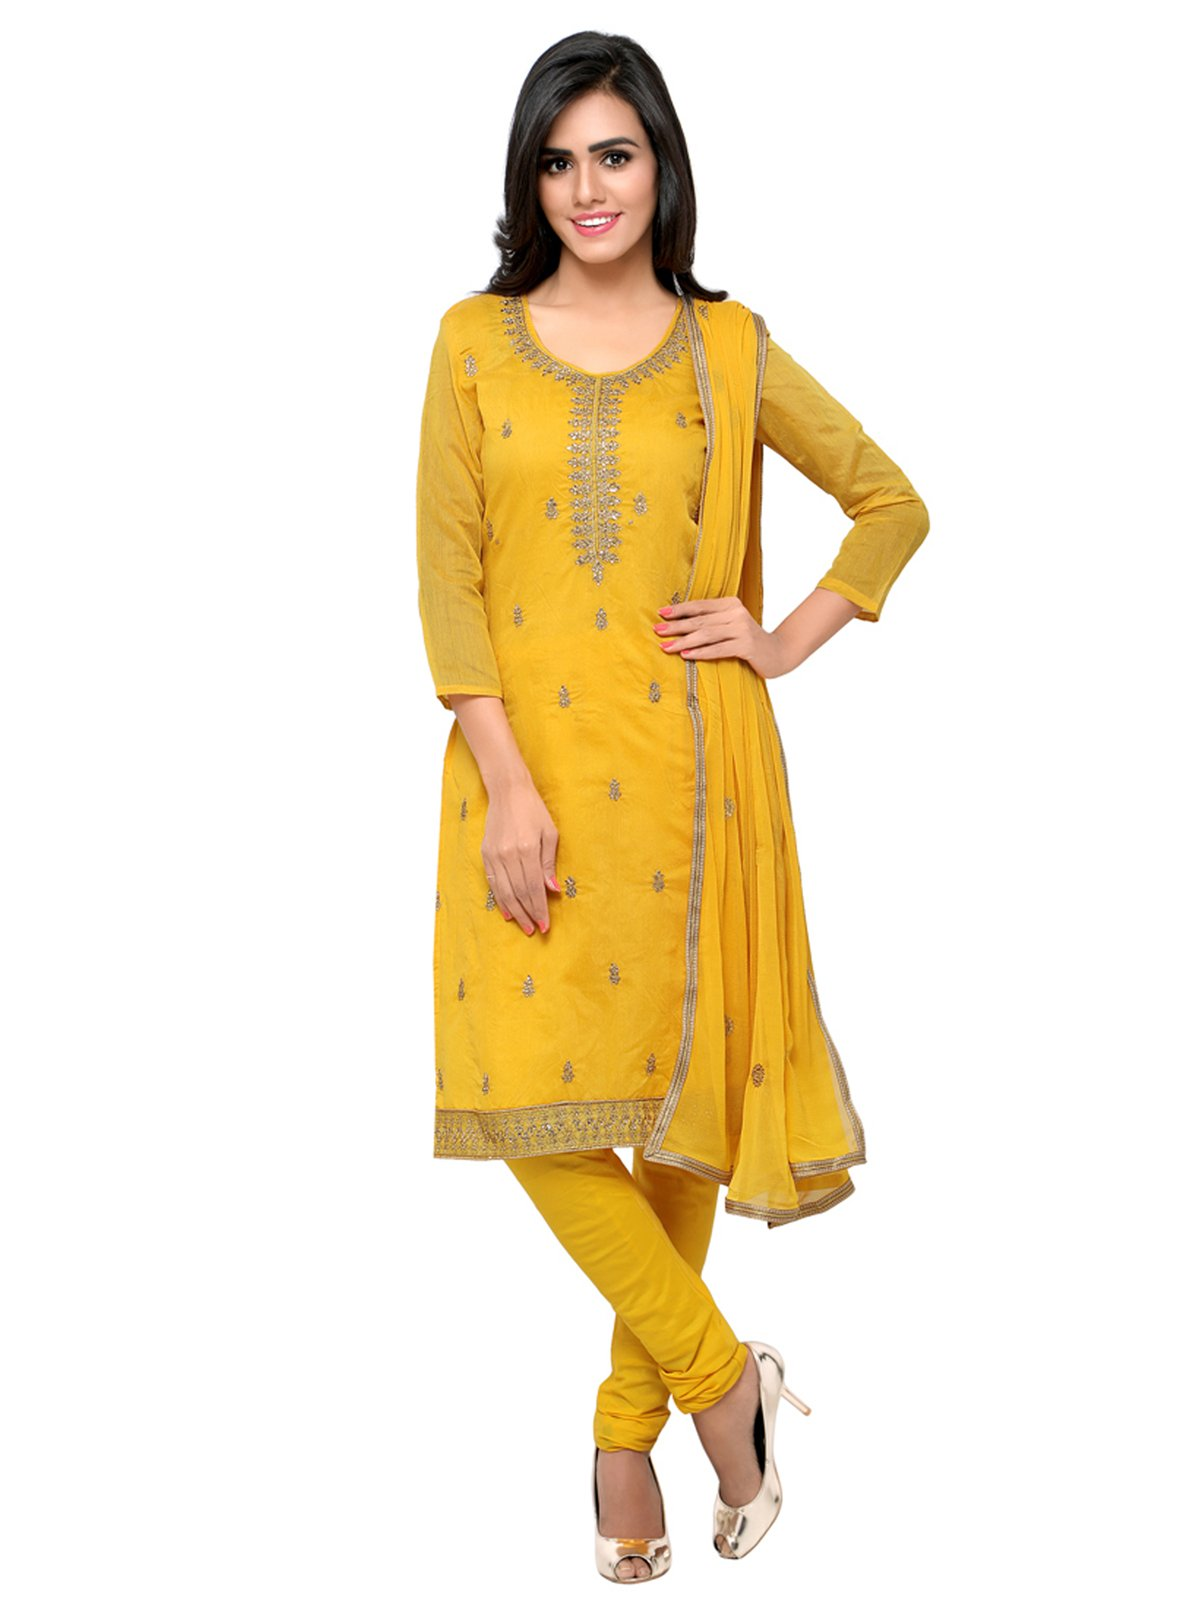 Kanchnar Women's Yellow Chanderi Cotton Dress Material